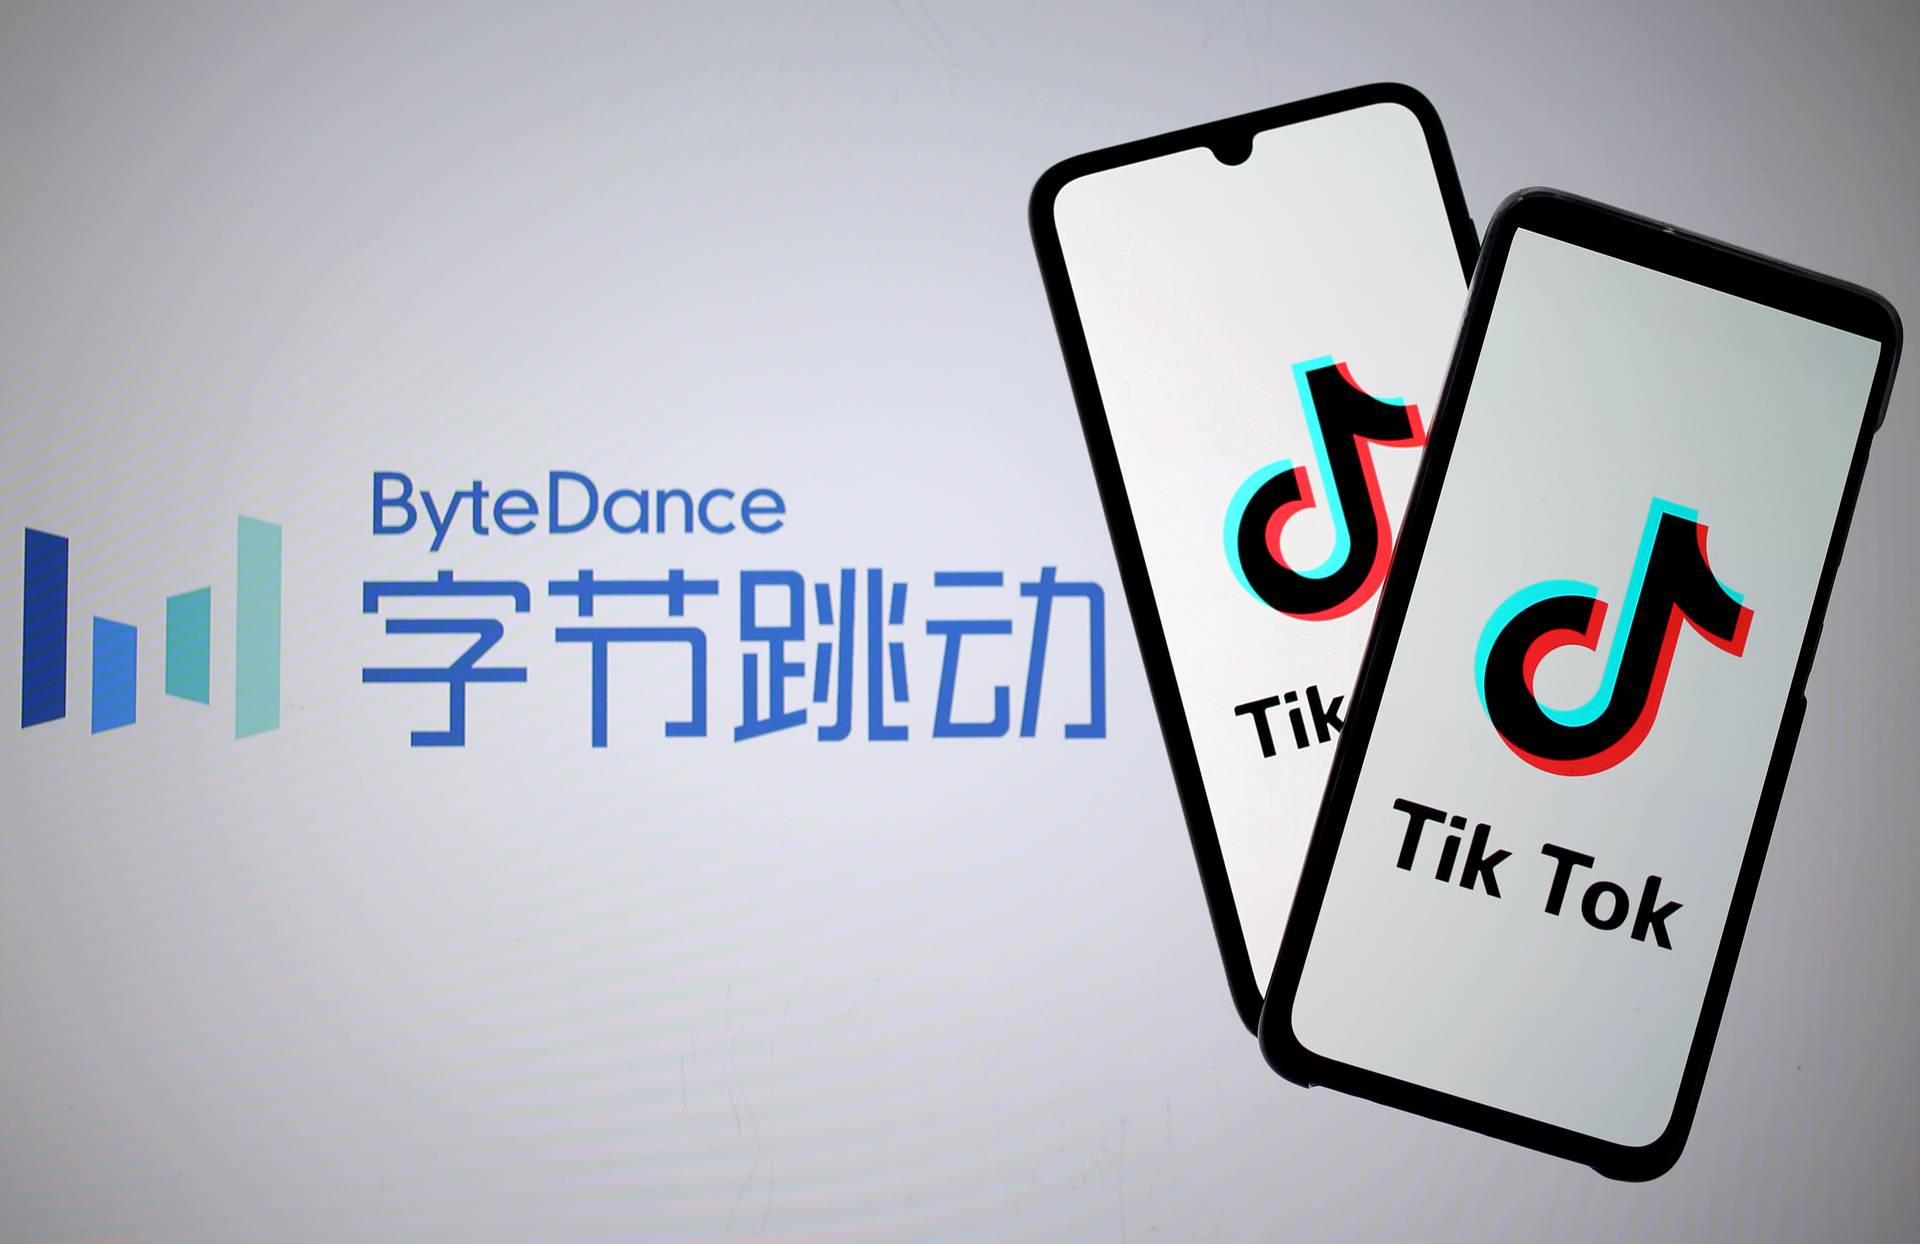 FILE PHOTO: Tik Tok logos are seen on smartphones in front of displayed ByteDance logo in this illustration